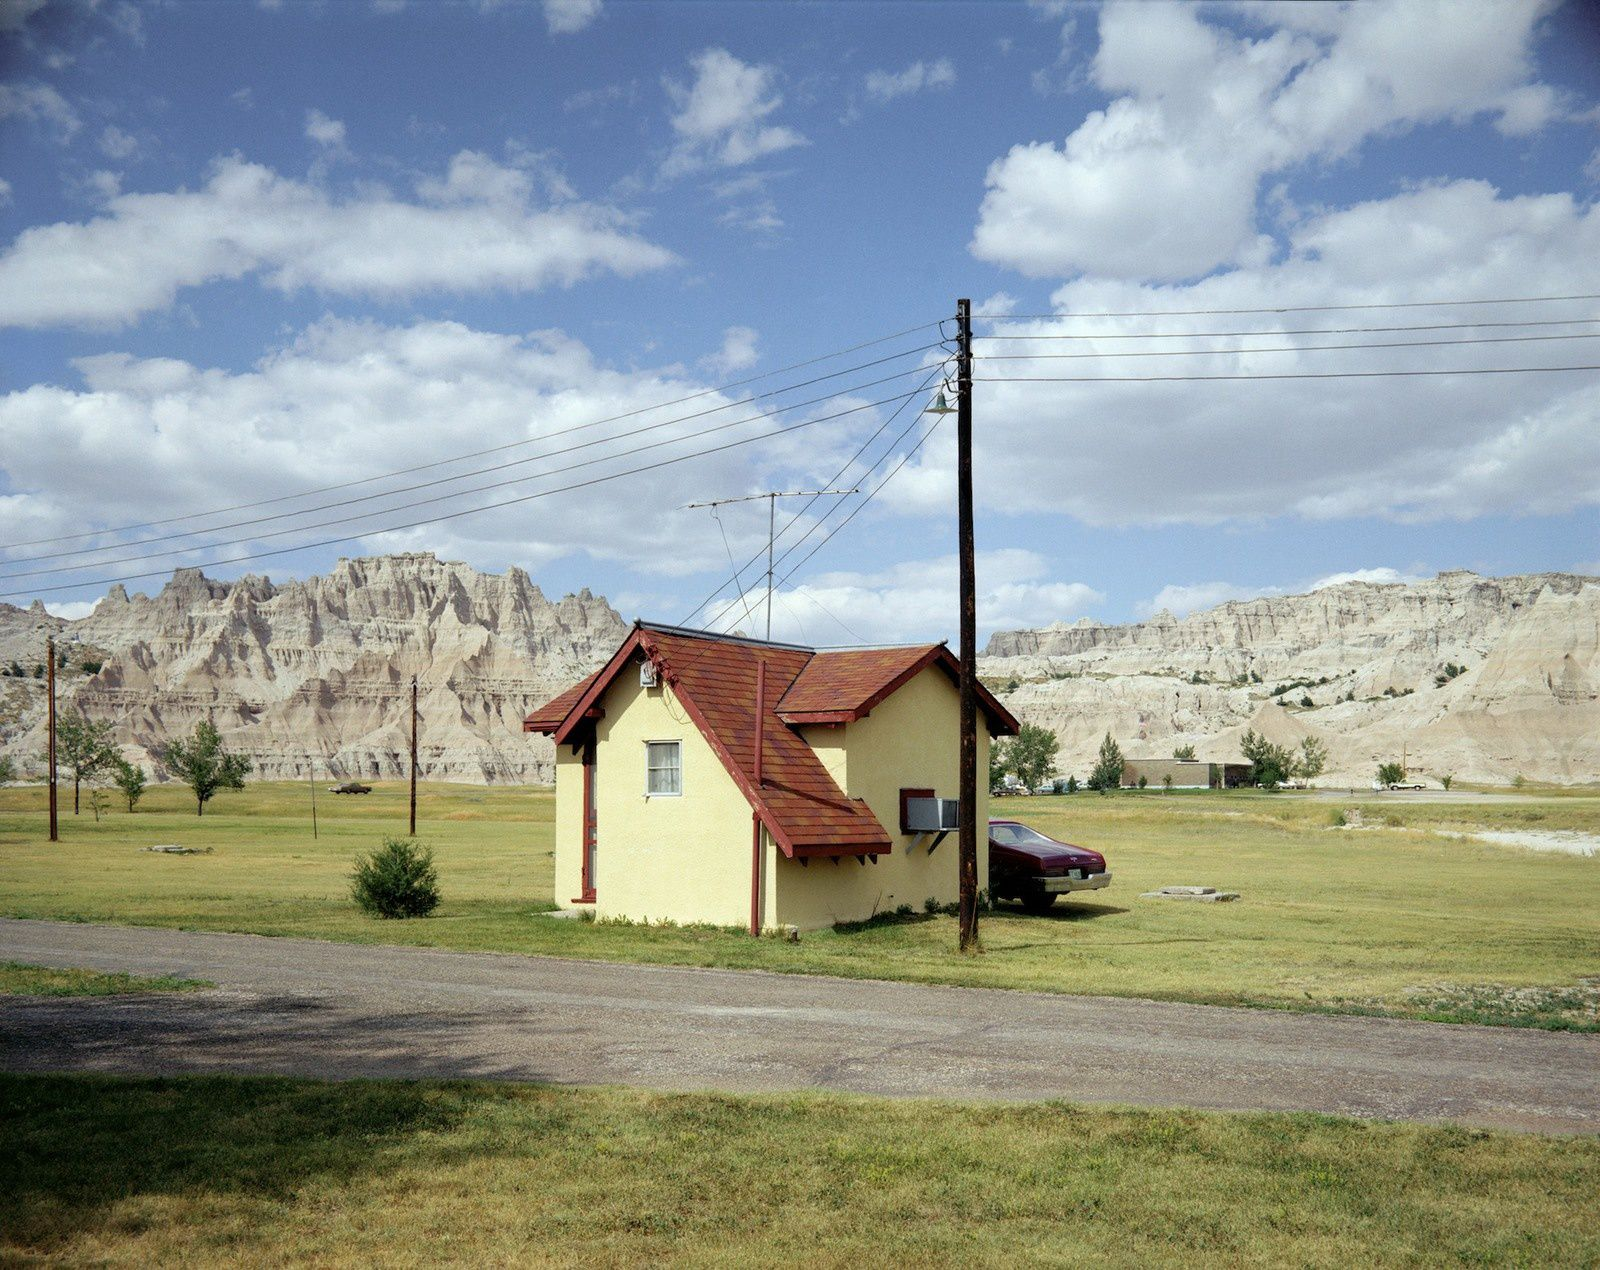 Photo by Stephen Shore - Via: yatzer.com